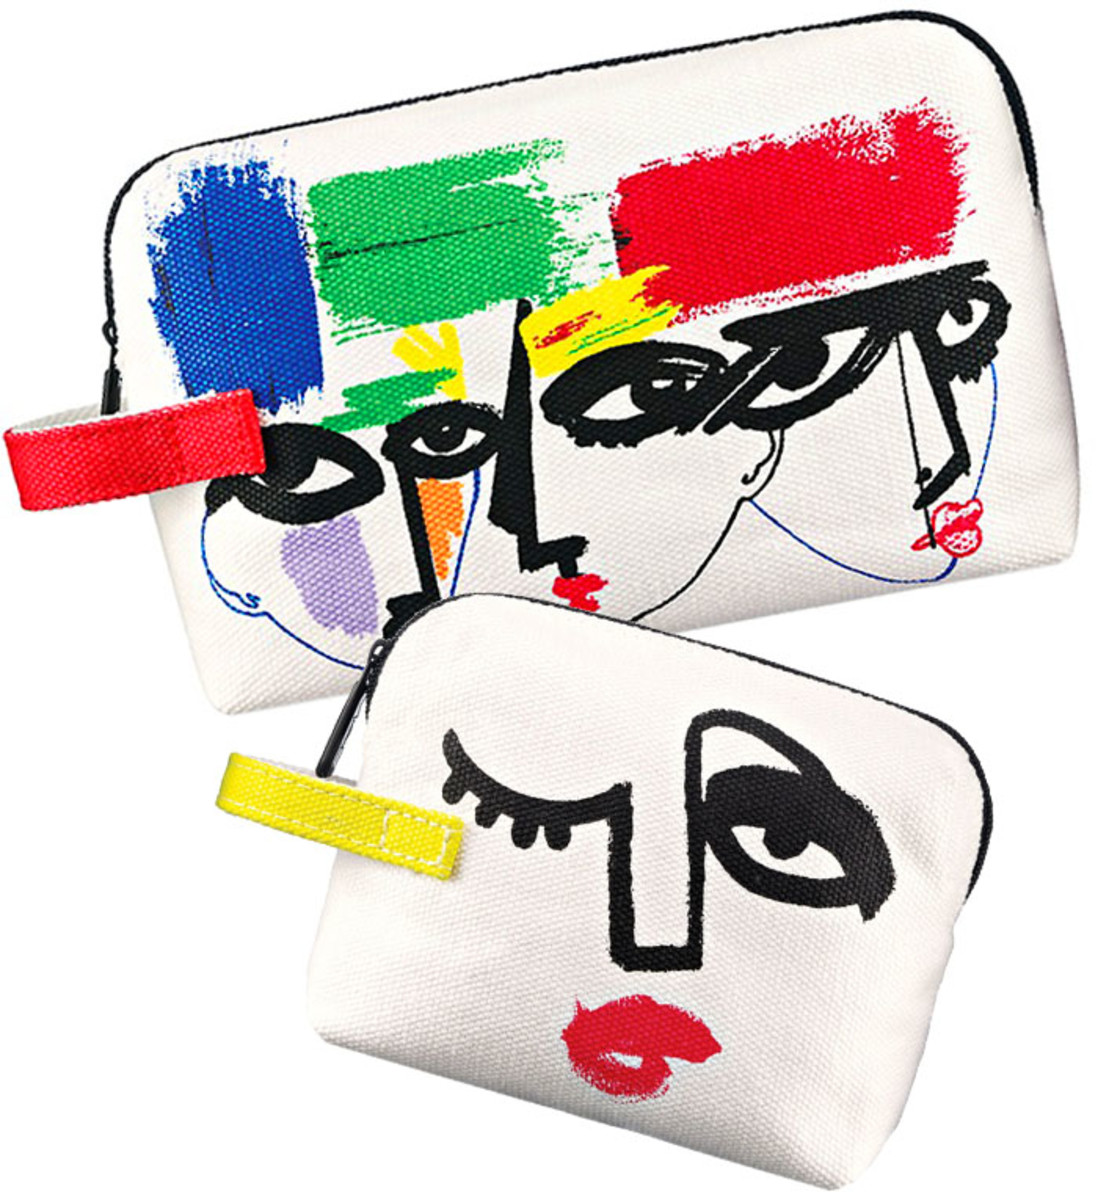 MAC-Illustrated-Small and Petite-Bag-By-Julie-Verhoeven